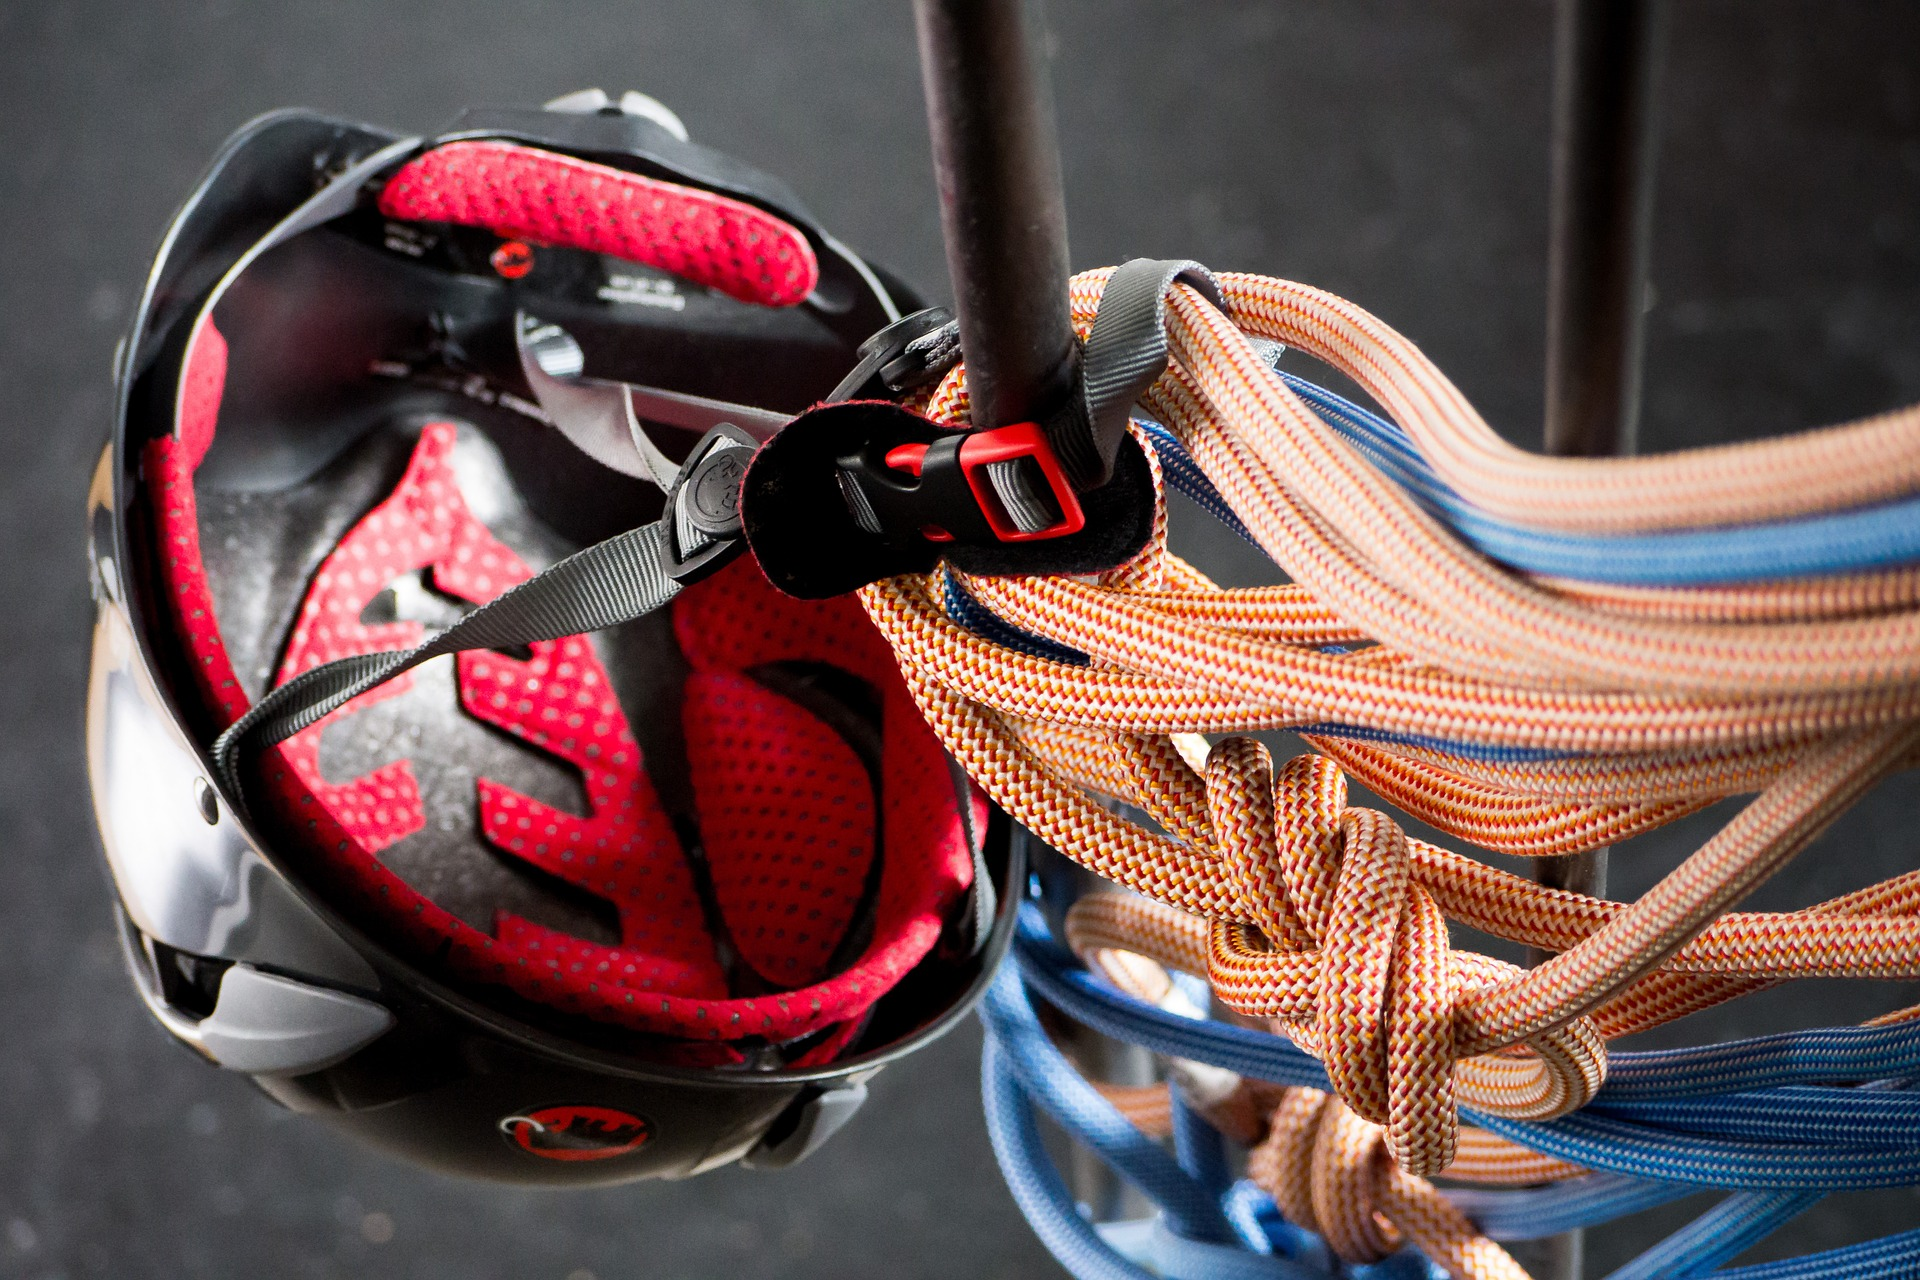 helmet and climbing ropes